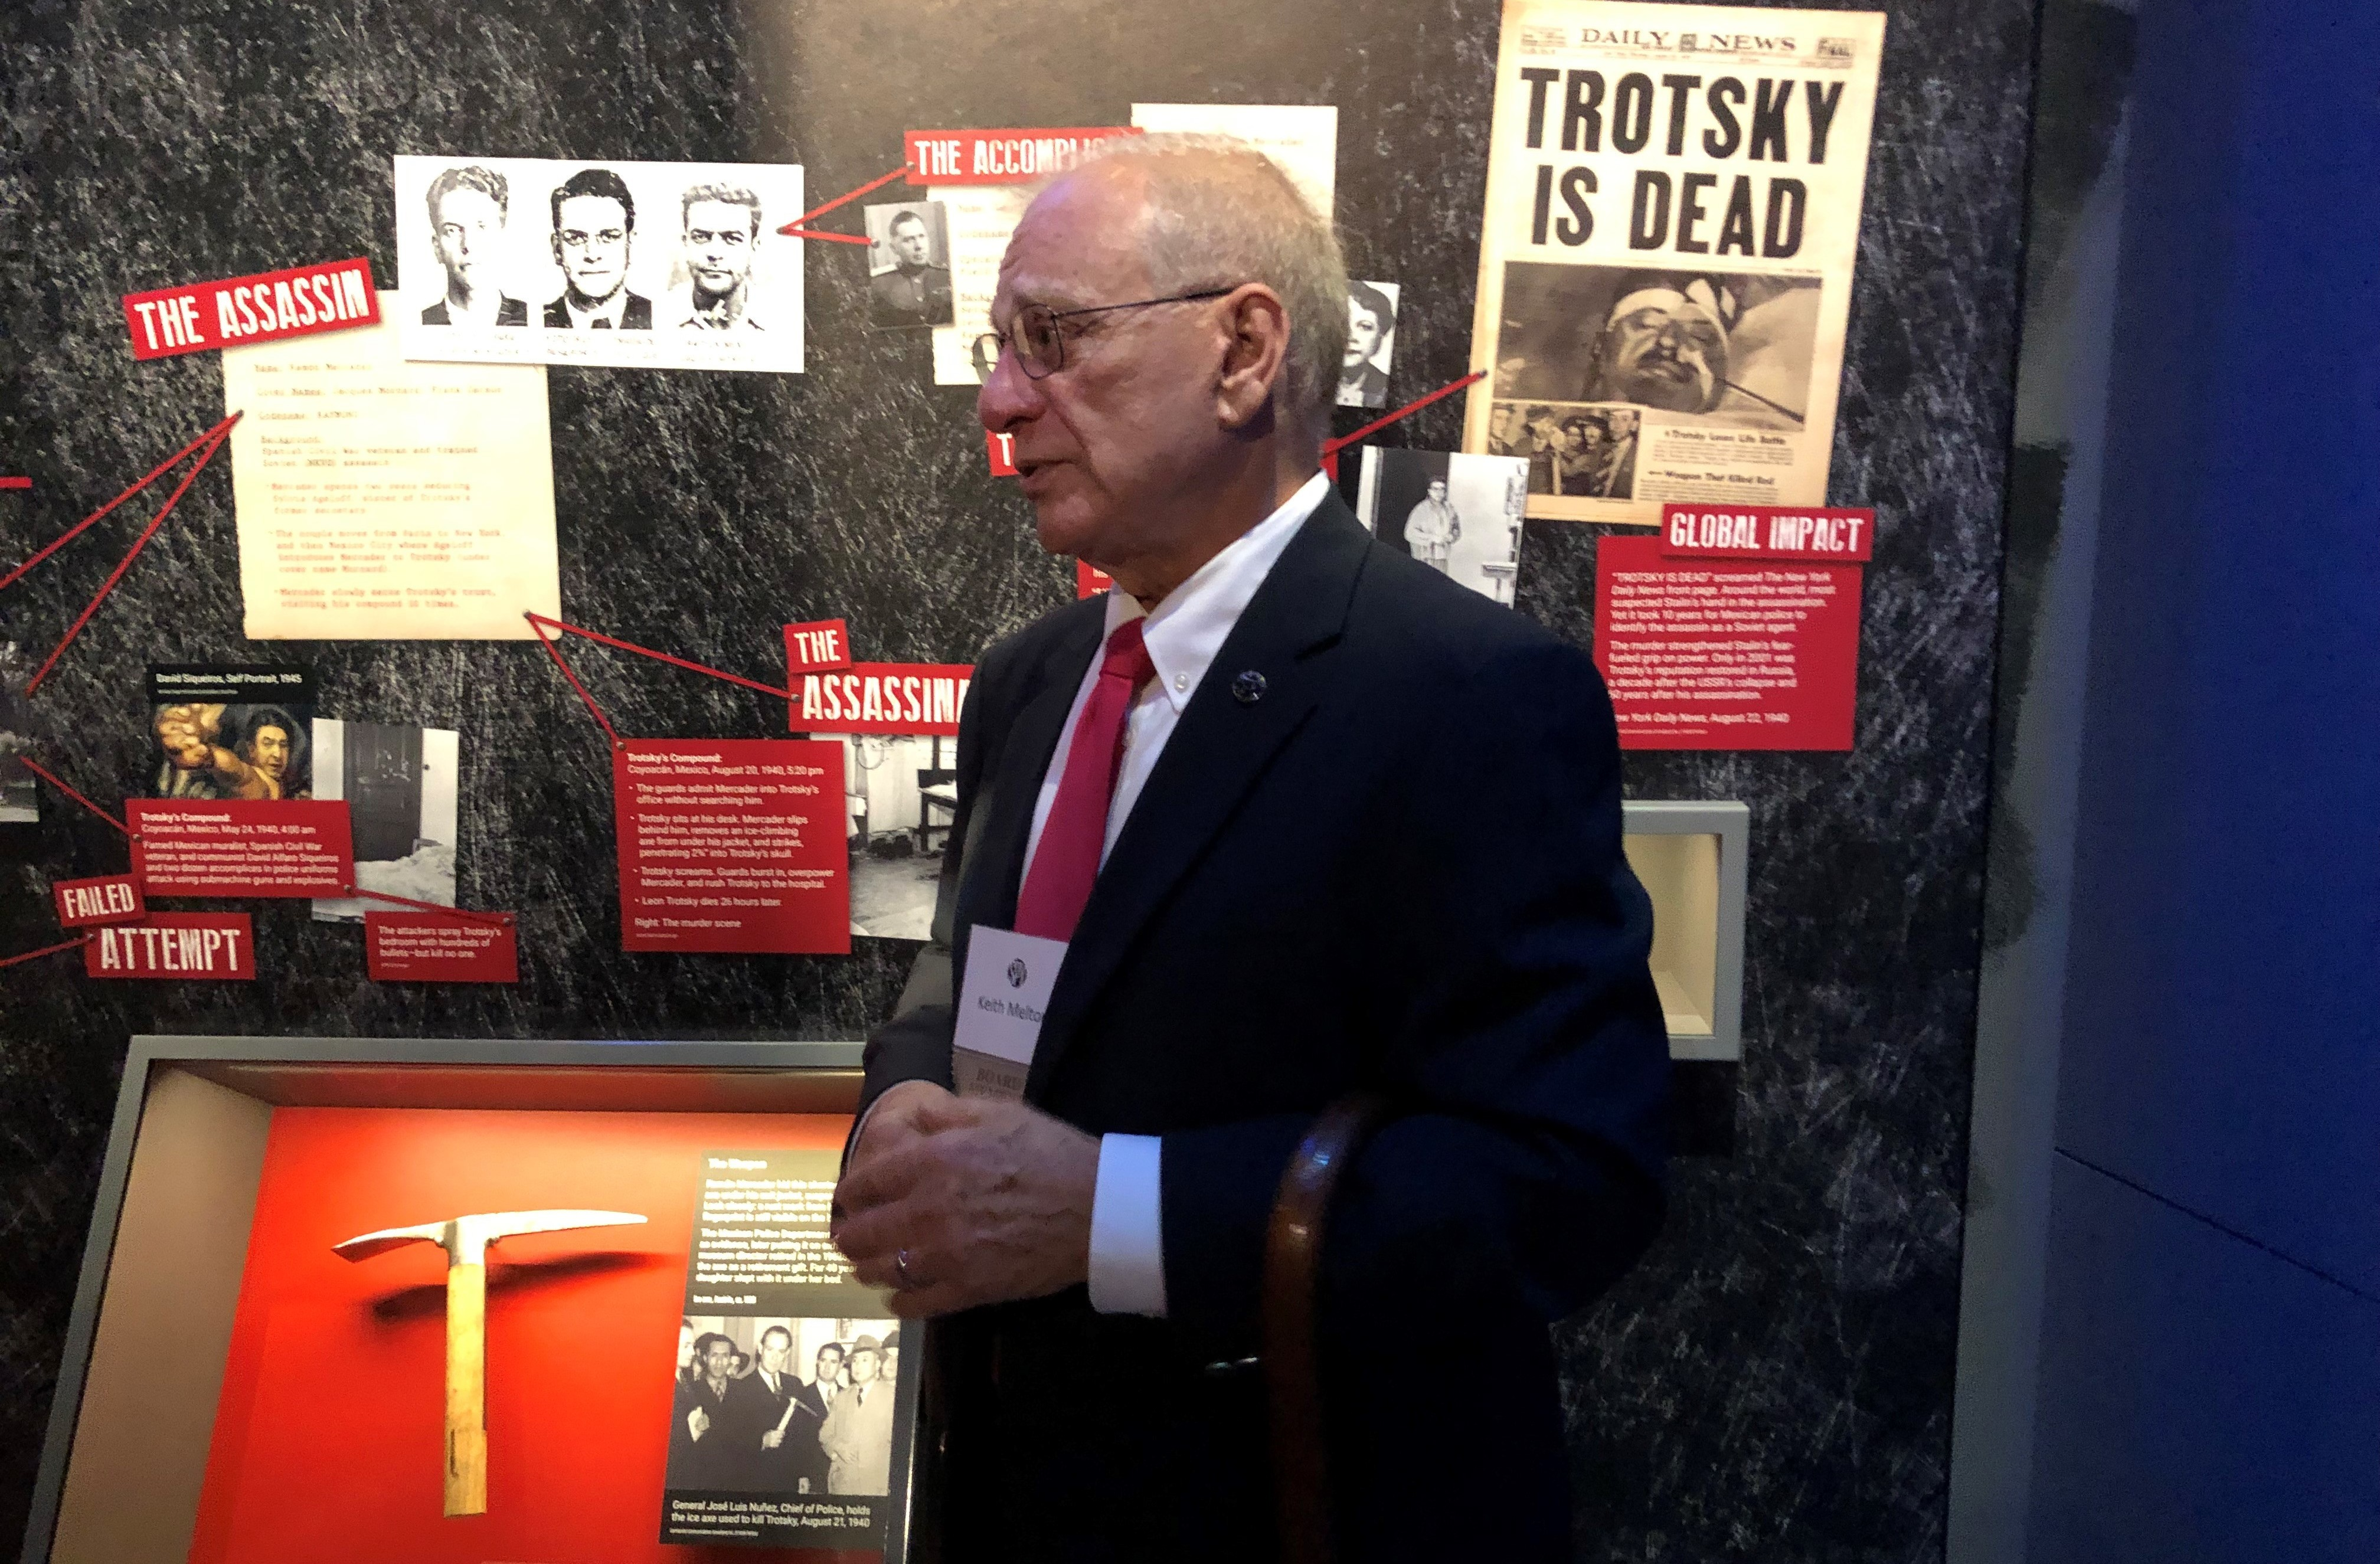 H. Keith Melton, a longtime collector of spy artifacts, stands next to the axe that was used to kill Soviet exile Leon Trotsky in Mexico in 1940. The axe is part of Melton's huge collection that he's donated to the new International Spy Museum.